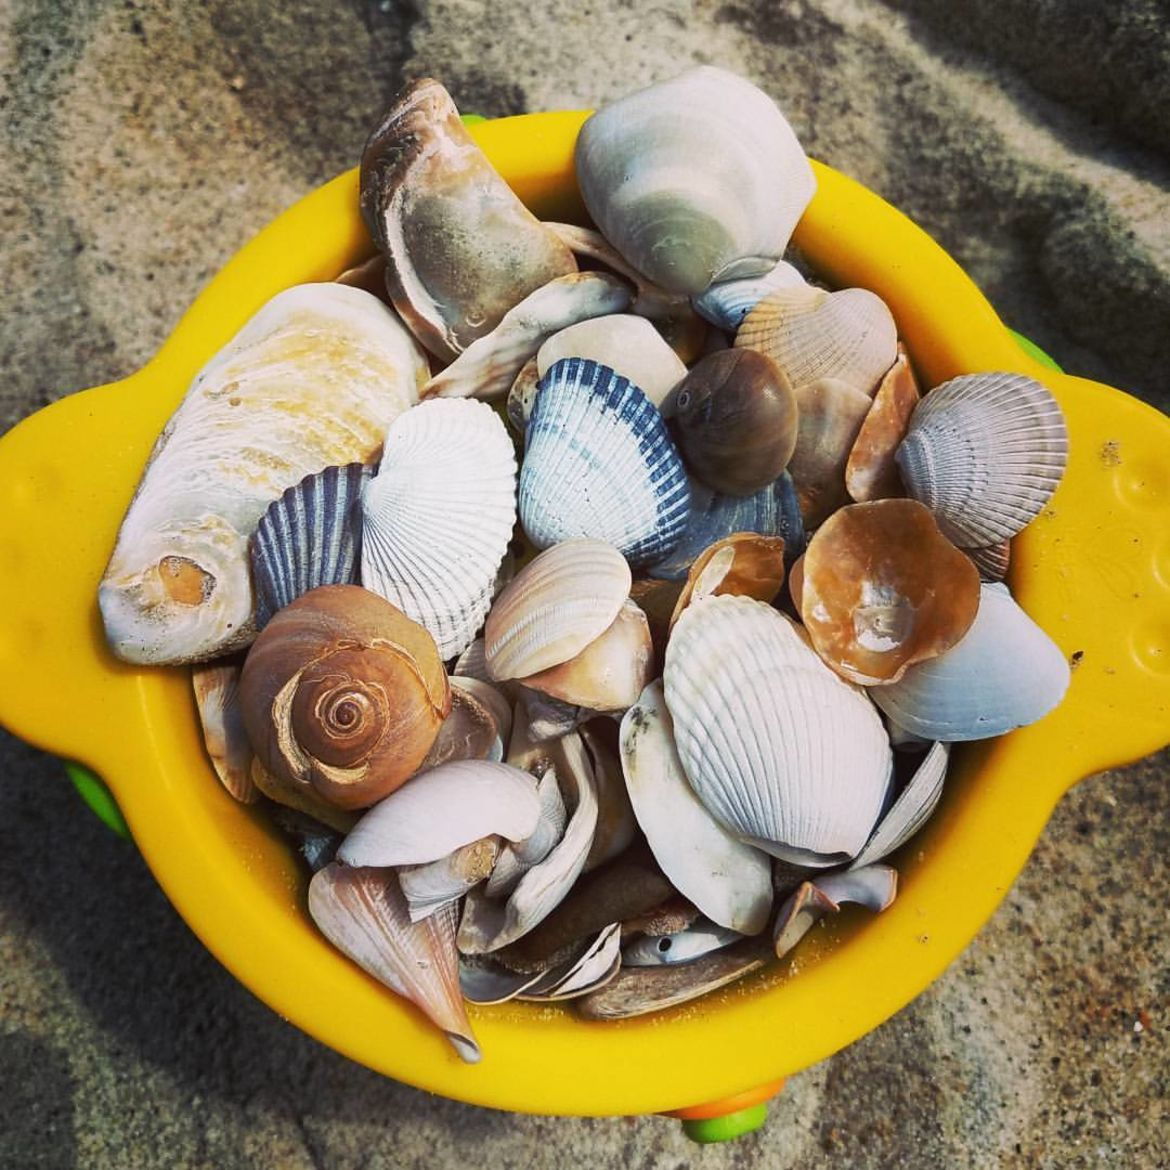 Cover Photo: Some seashells that Nicole's actual children collected last weekend